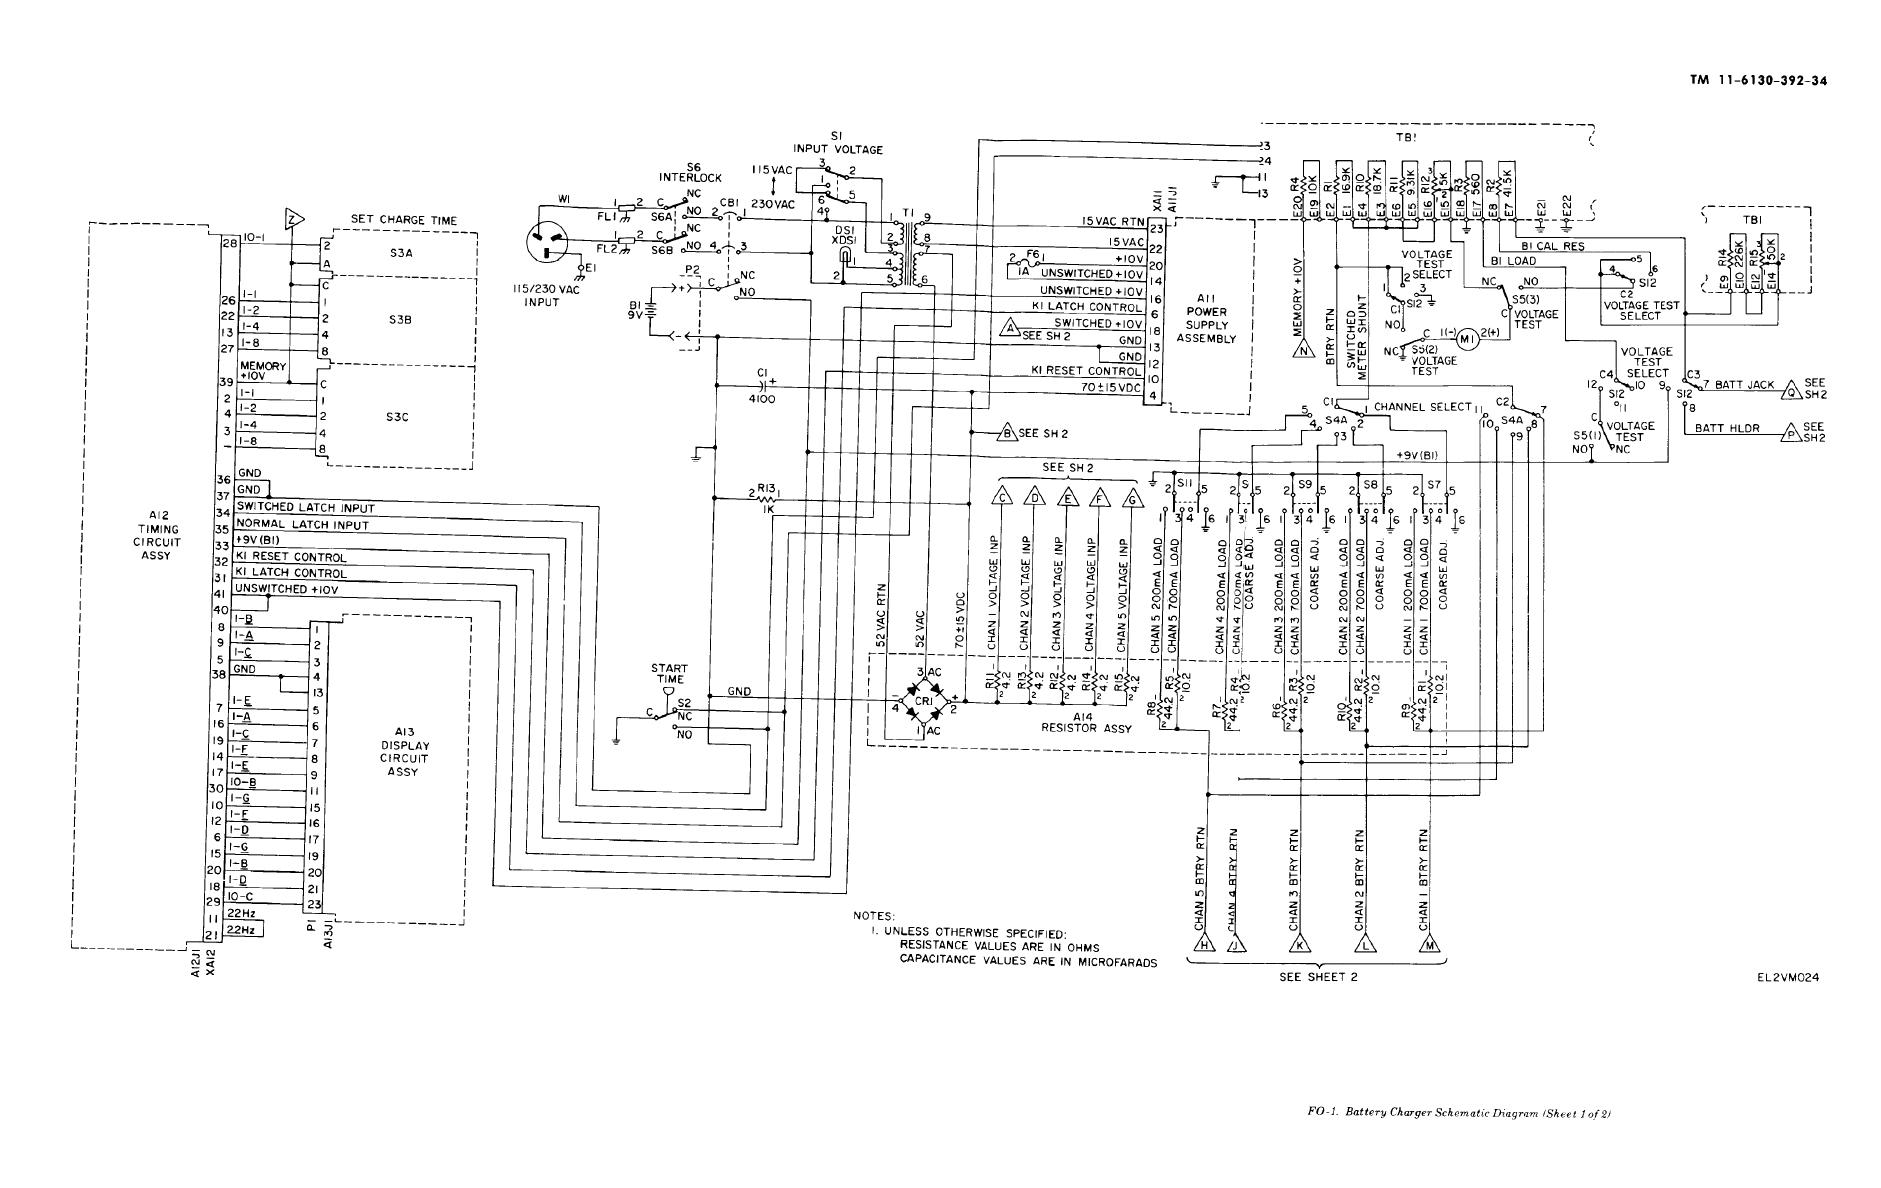 schumacher battery charger se 2158 wiring diagram schumacher schumacher psw wiring diagram 3 schumacher printable wiring on schumacher battery charger se 2158 wiring